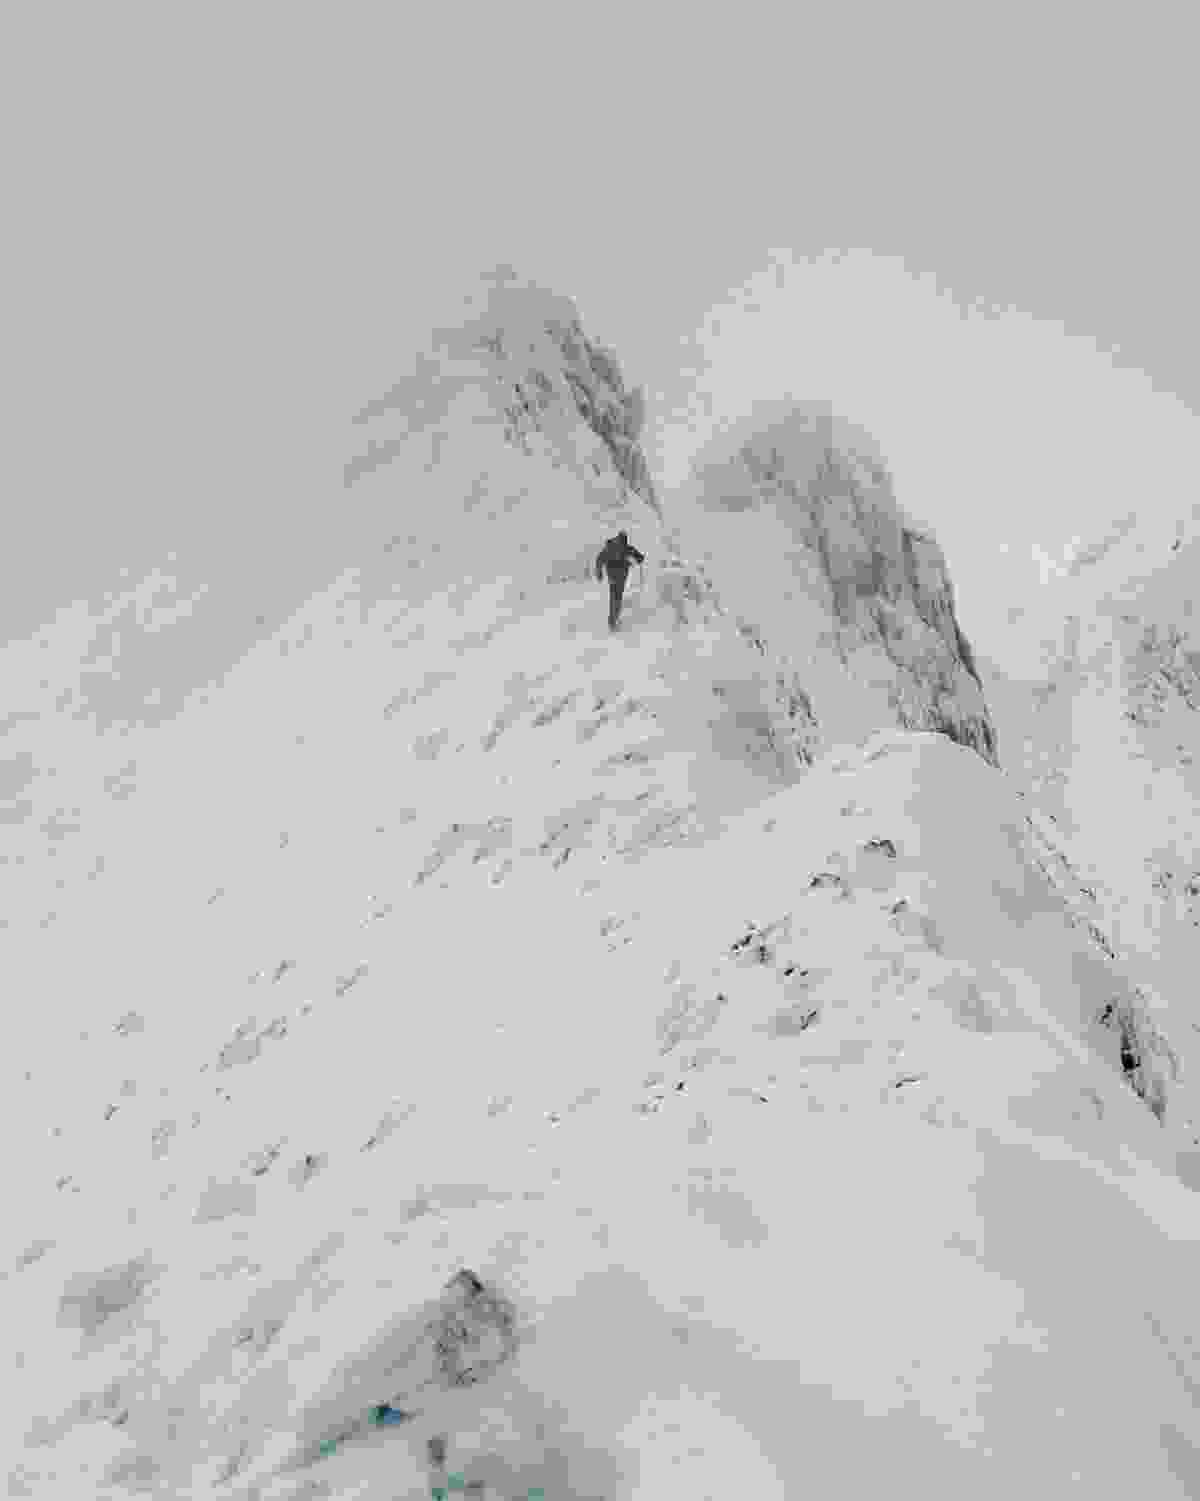 Crib Goch in winter. There is no place for the inexperienced (Nick Livesey)